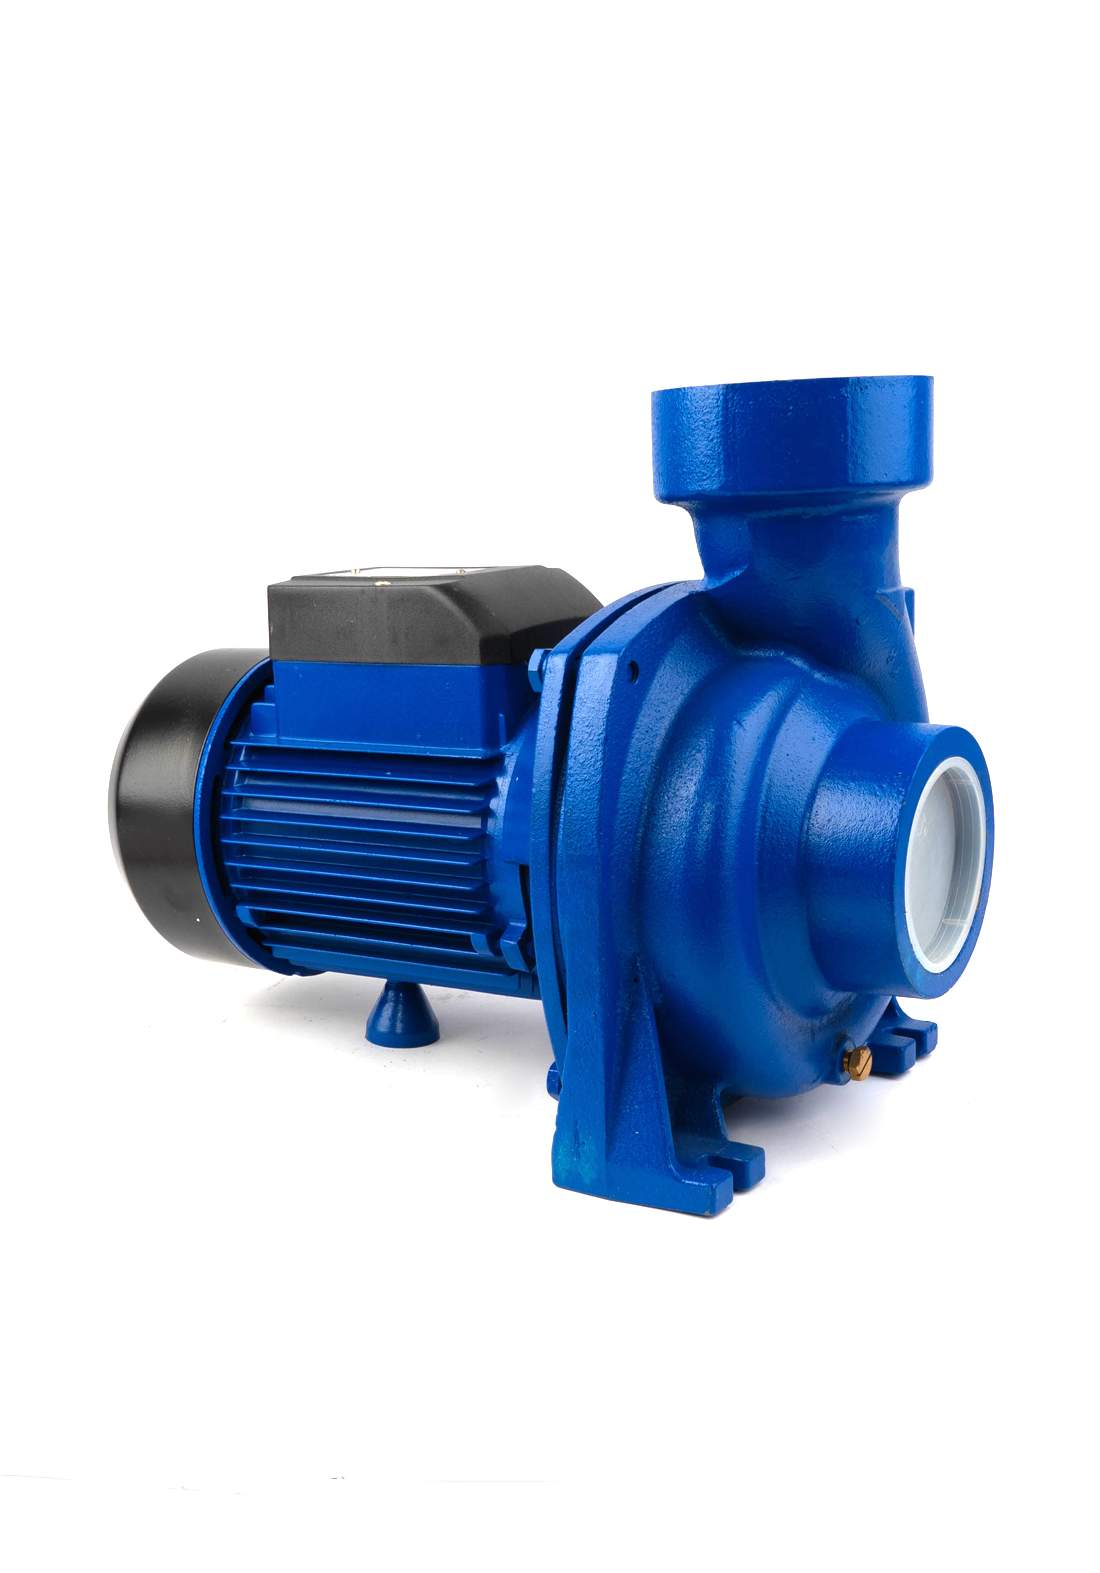 """DecoVolt 4925 Water pump 1 horse outlet hook 2 """"ang  ماطور ماء 1 حصان حنزيرة مخرج2"""